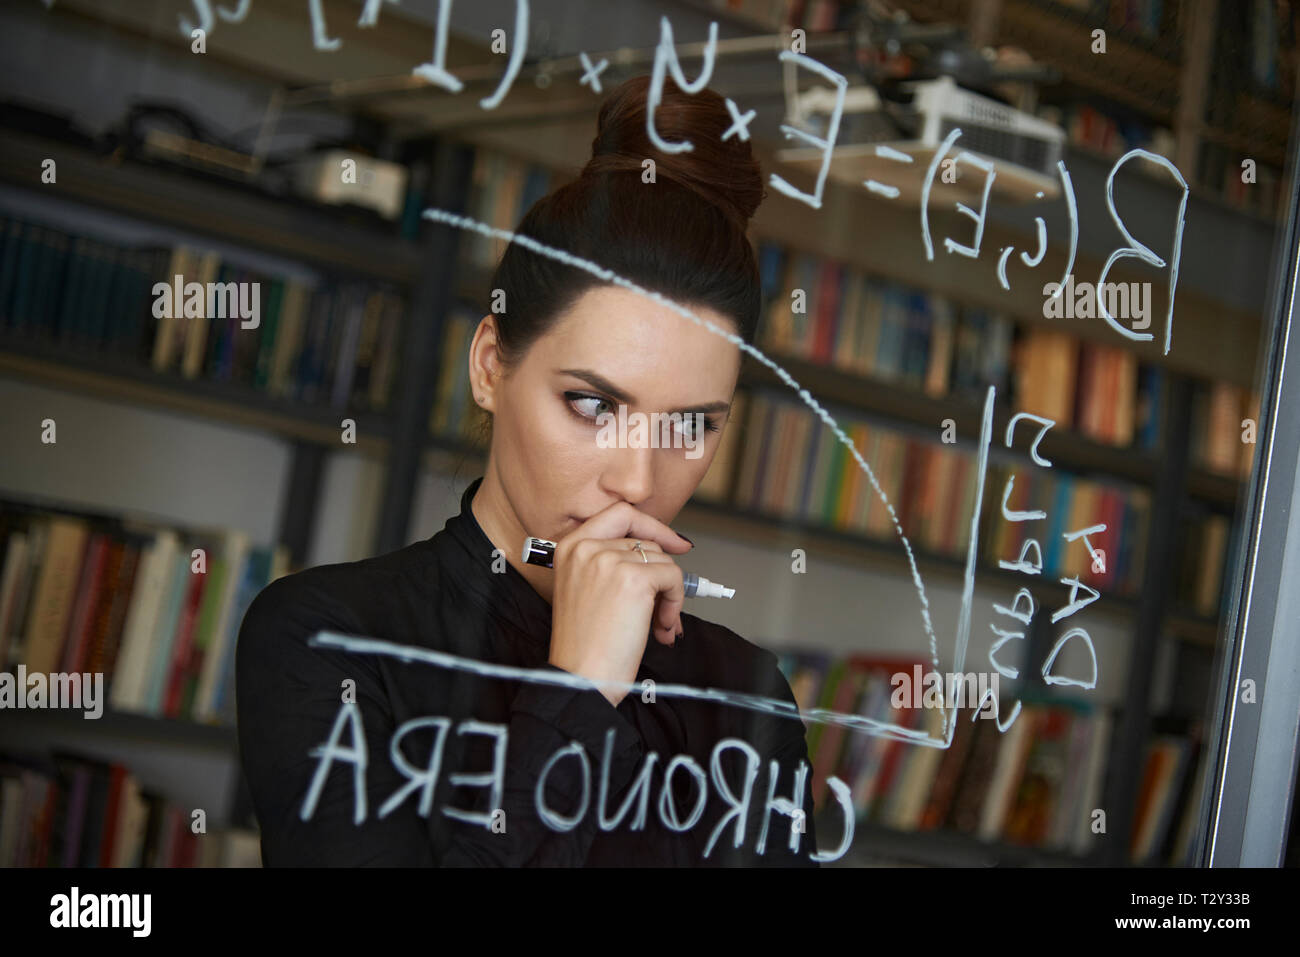 Educated business woman writing down mathmetical formula on glass - Stock Image